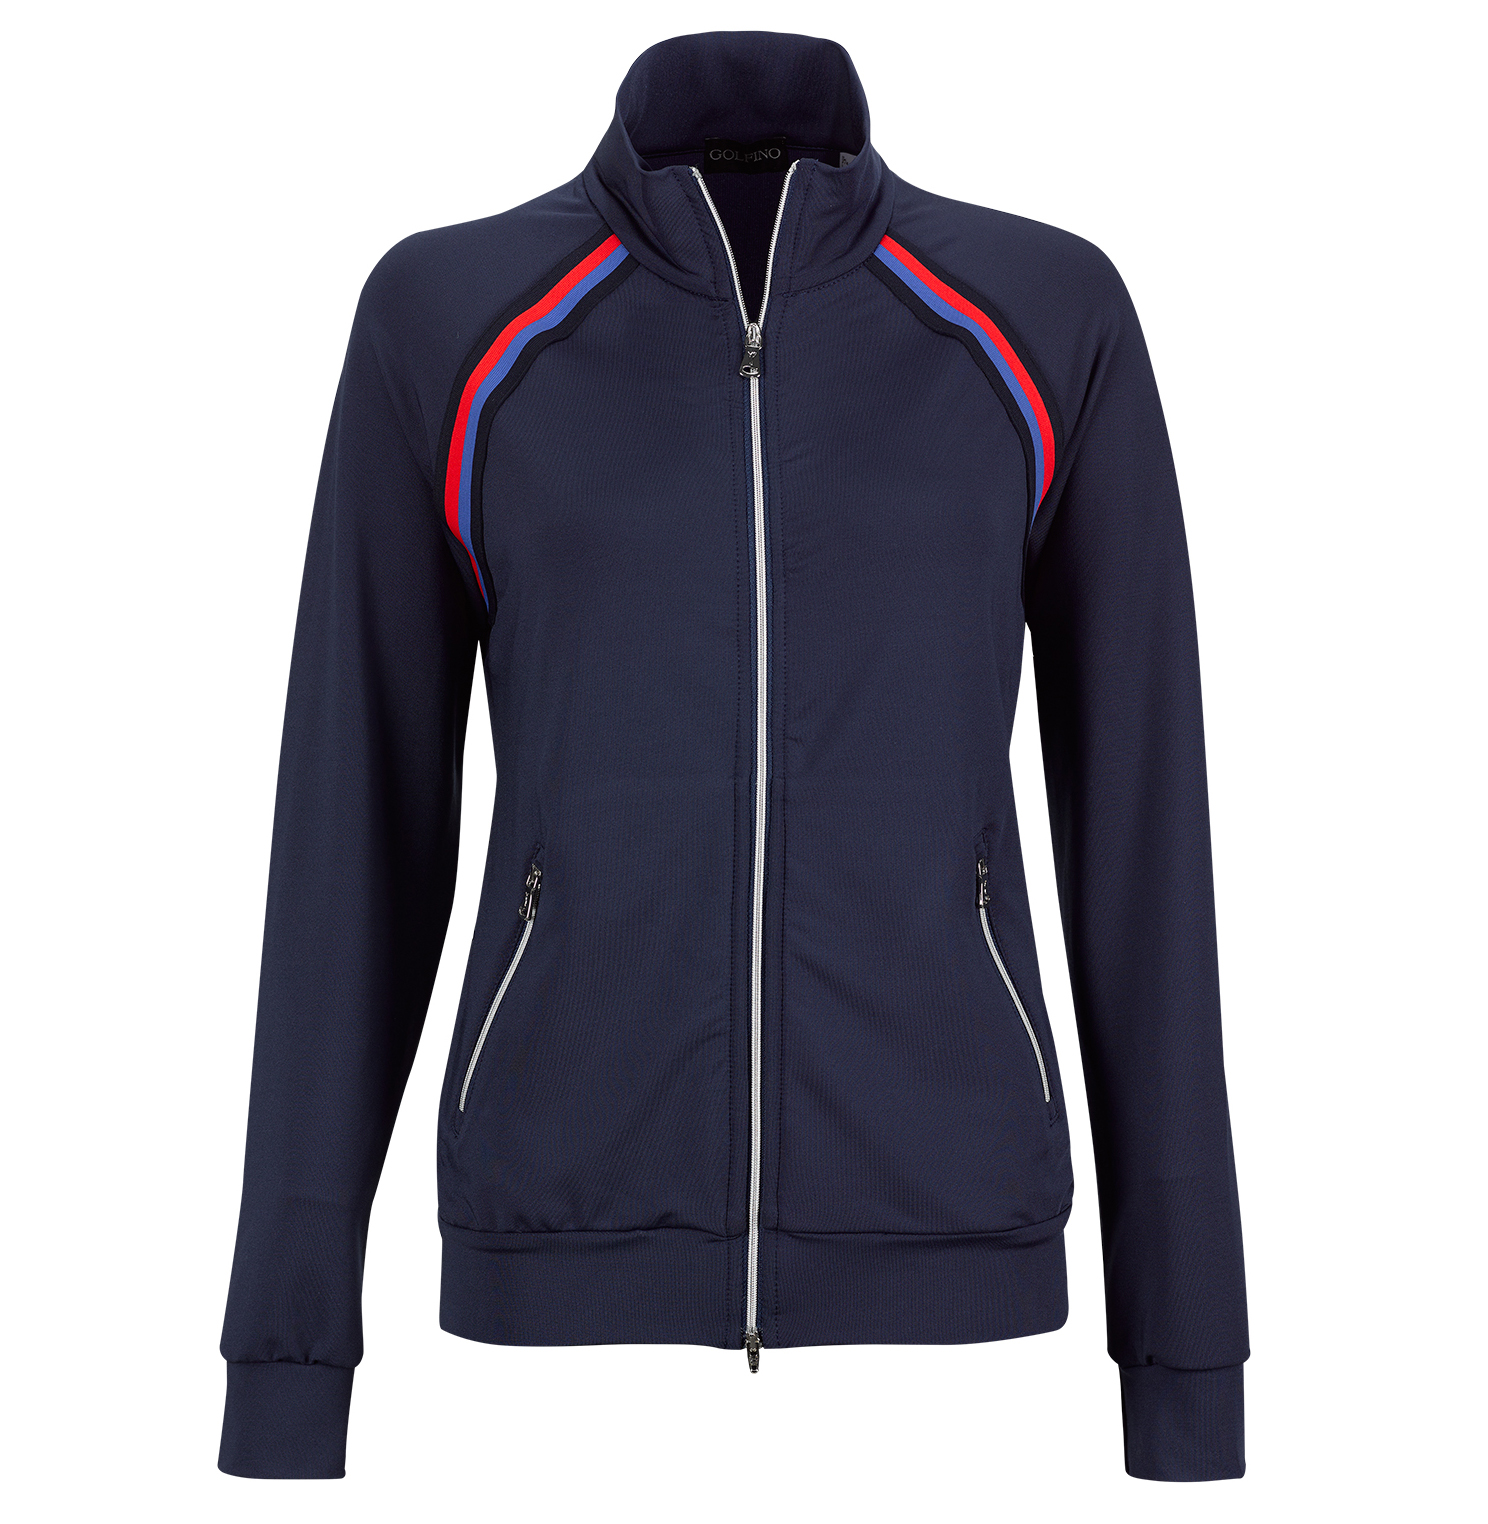 Ladies' retro sport jacket from premium stretch material